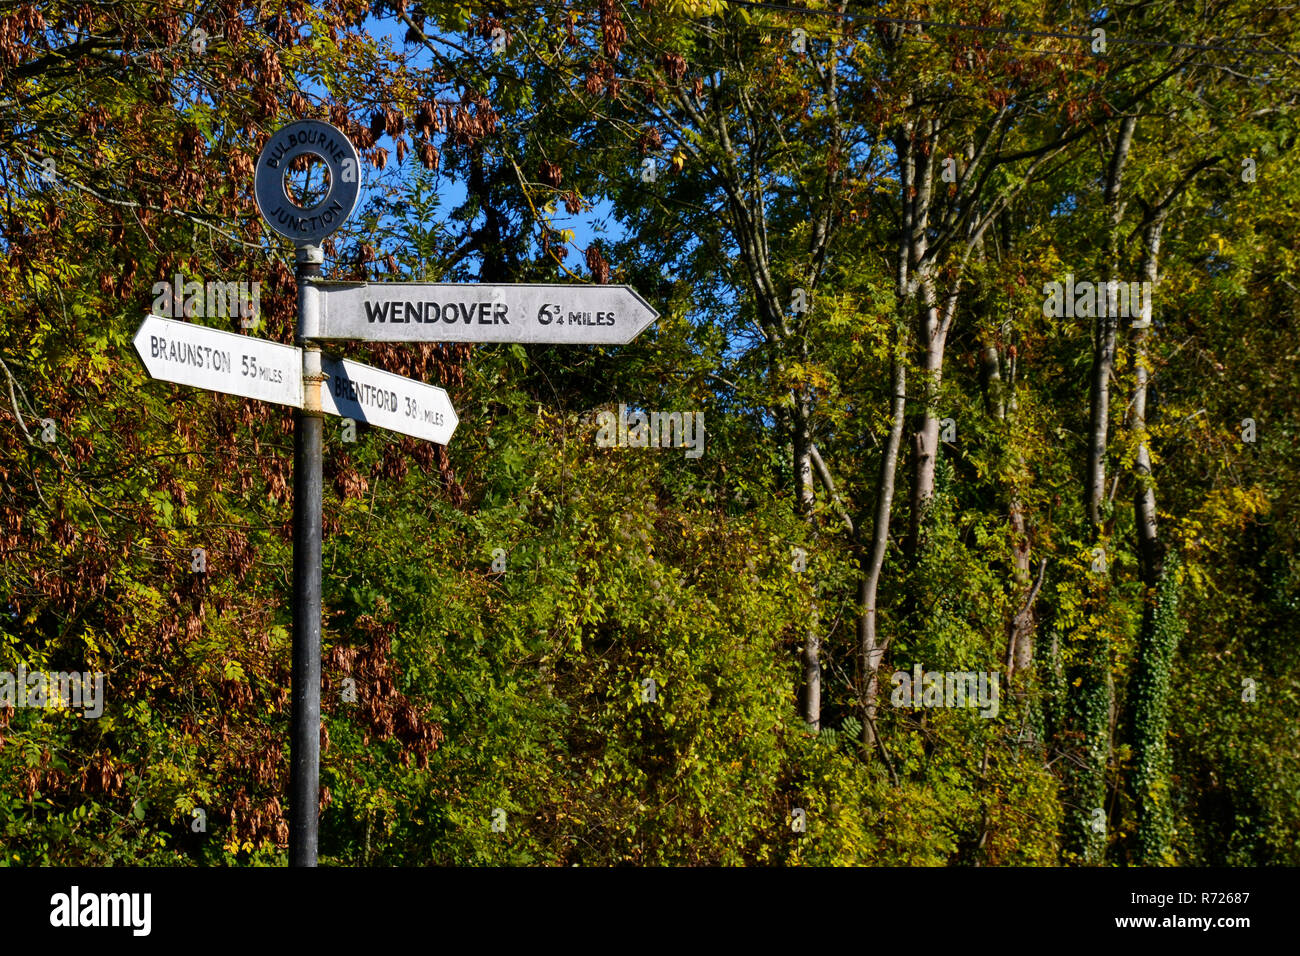 Signpost at Bulbourne Junction on the Grand Union Canal, Aston Clinton, UK, for directions to Wendover, Braunston, and Brentford. - Stock Image